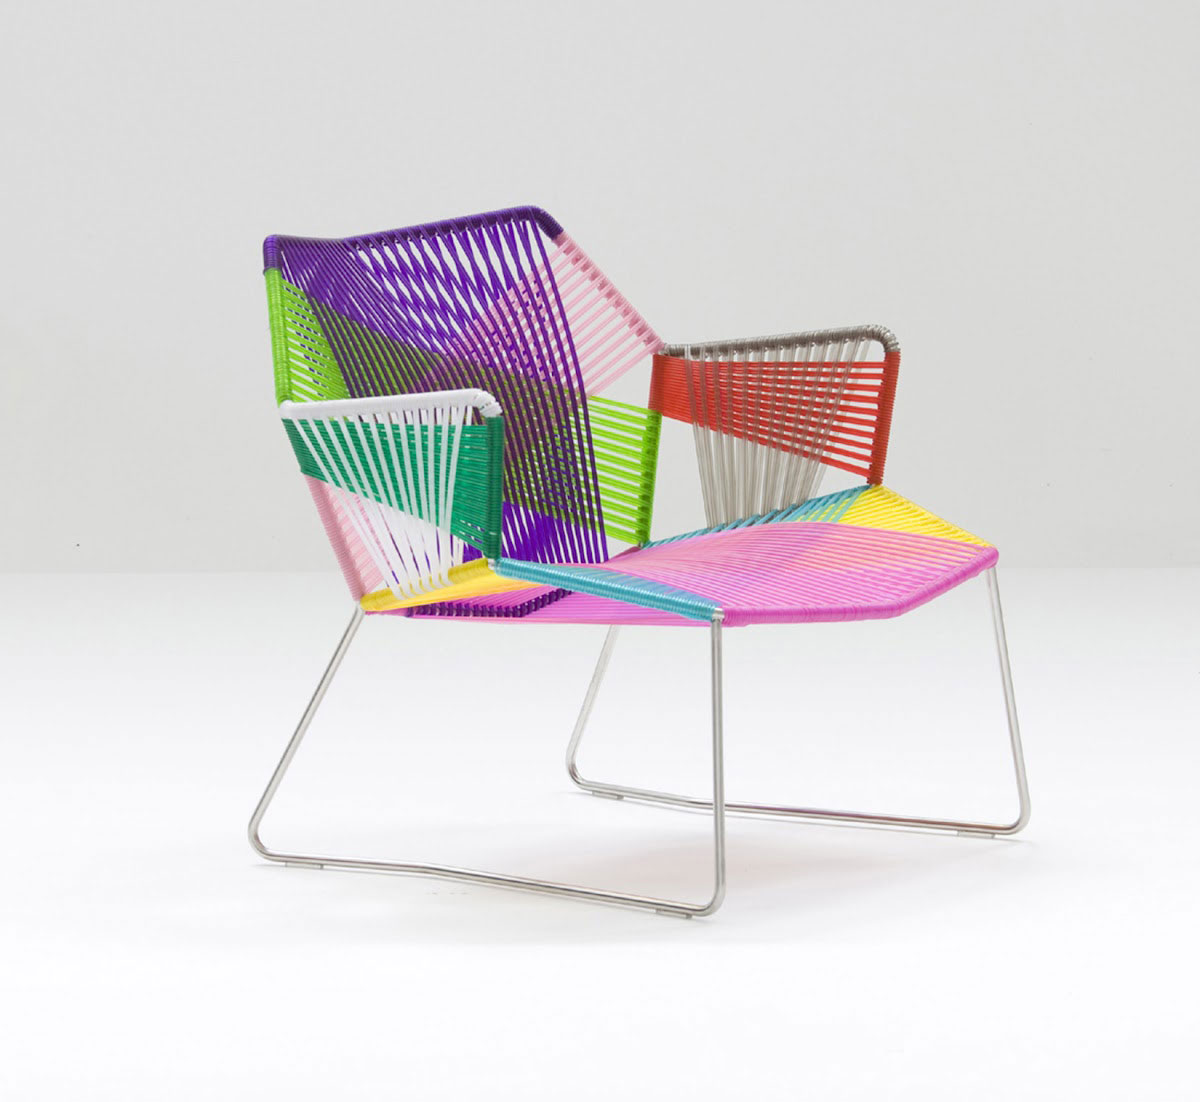 Tropicalia Armchair by Patricia Urquiola for Moroso | Yellowtrace